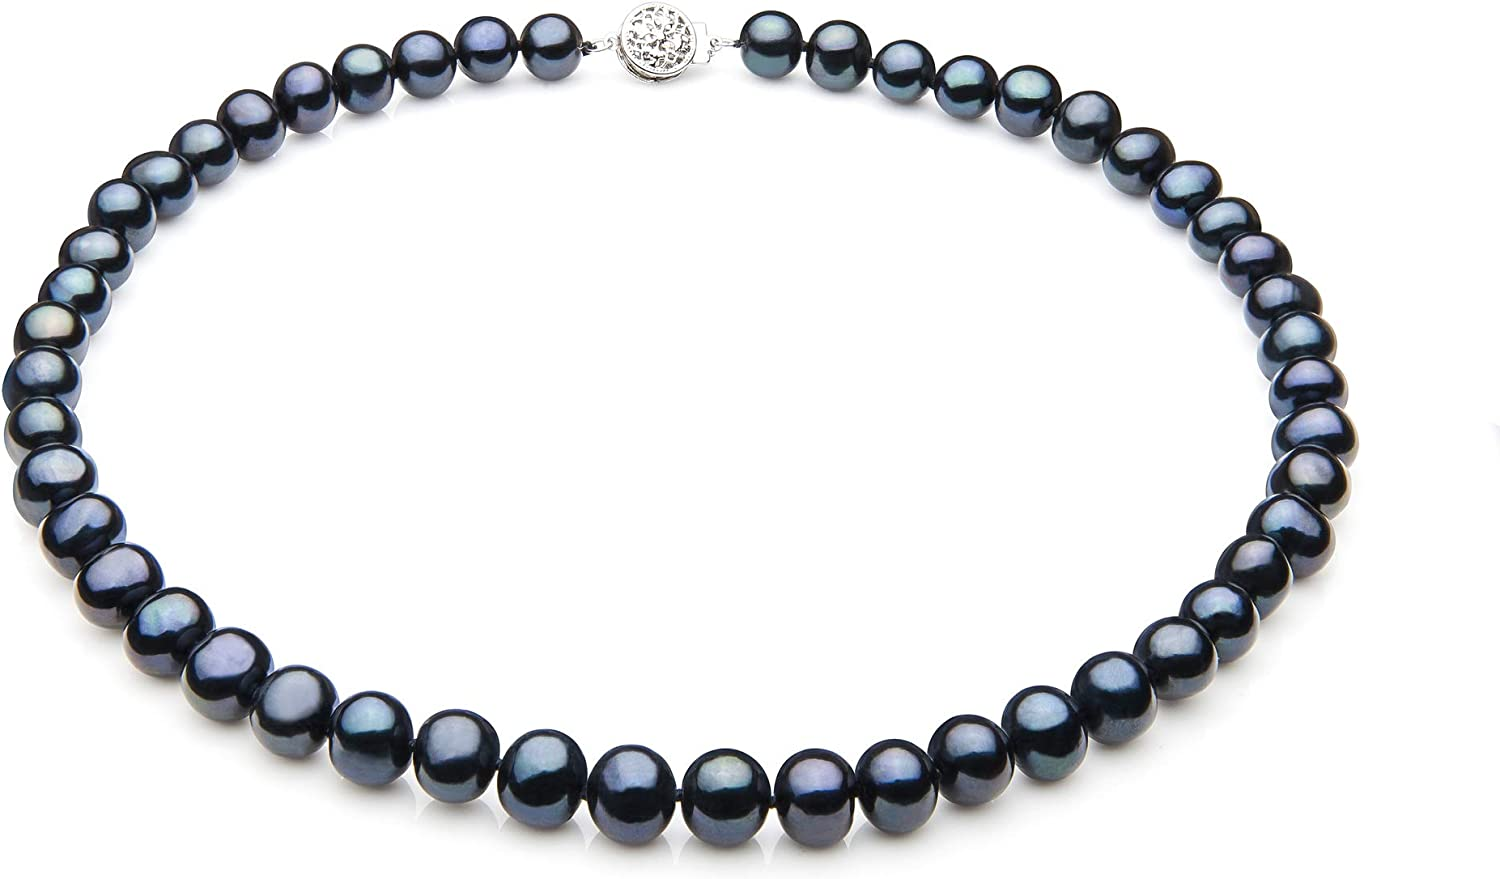 Single Import Black 7-8mm A Quality Detroit Mall Freshwater Sterling Silver Cult 925